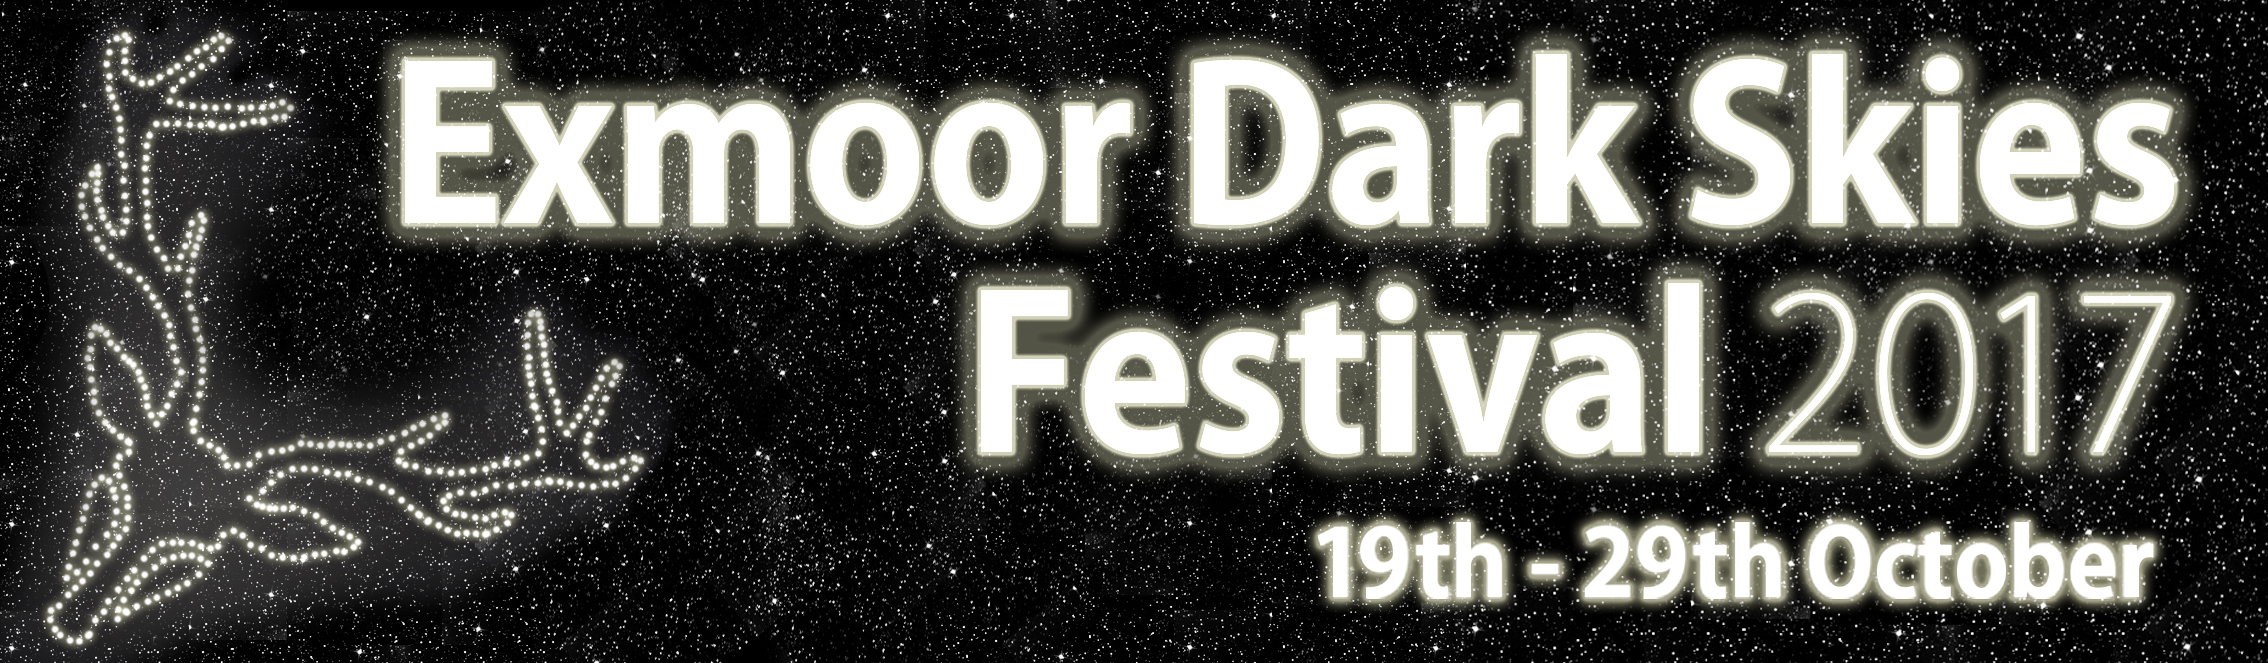 Exmoor Dark Skies Festival | Channel Adventure